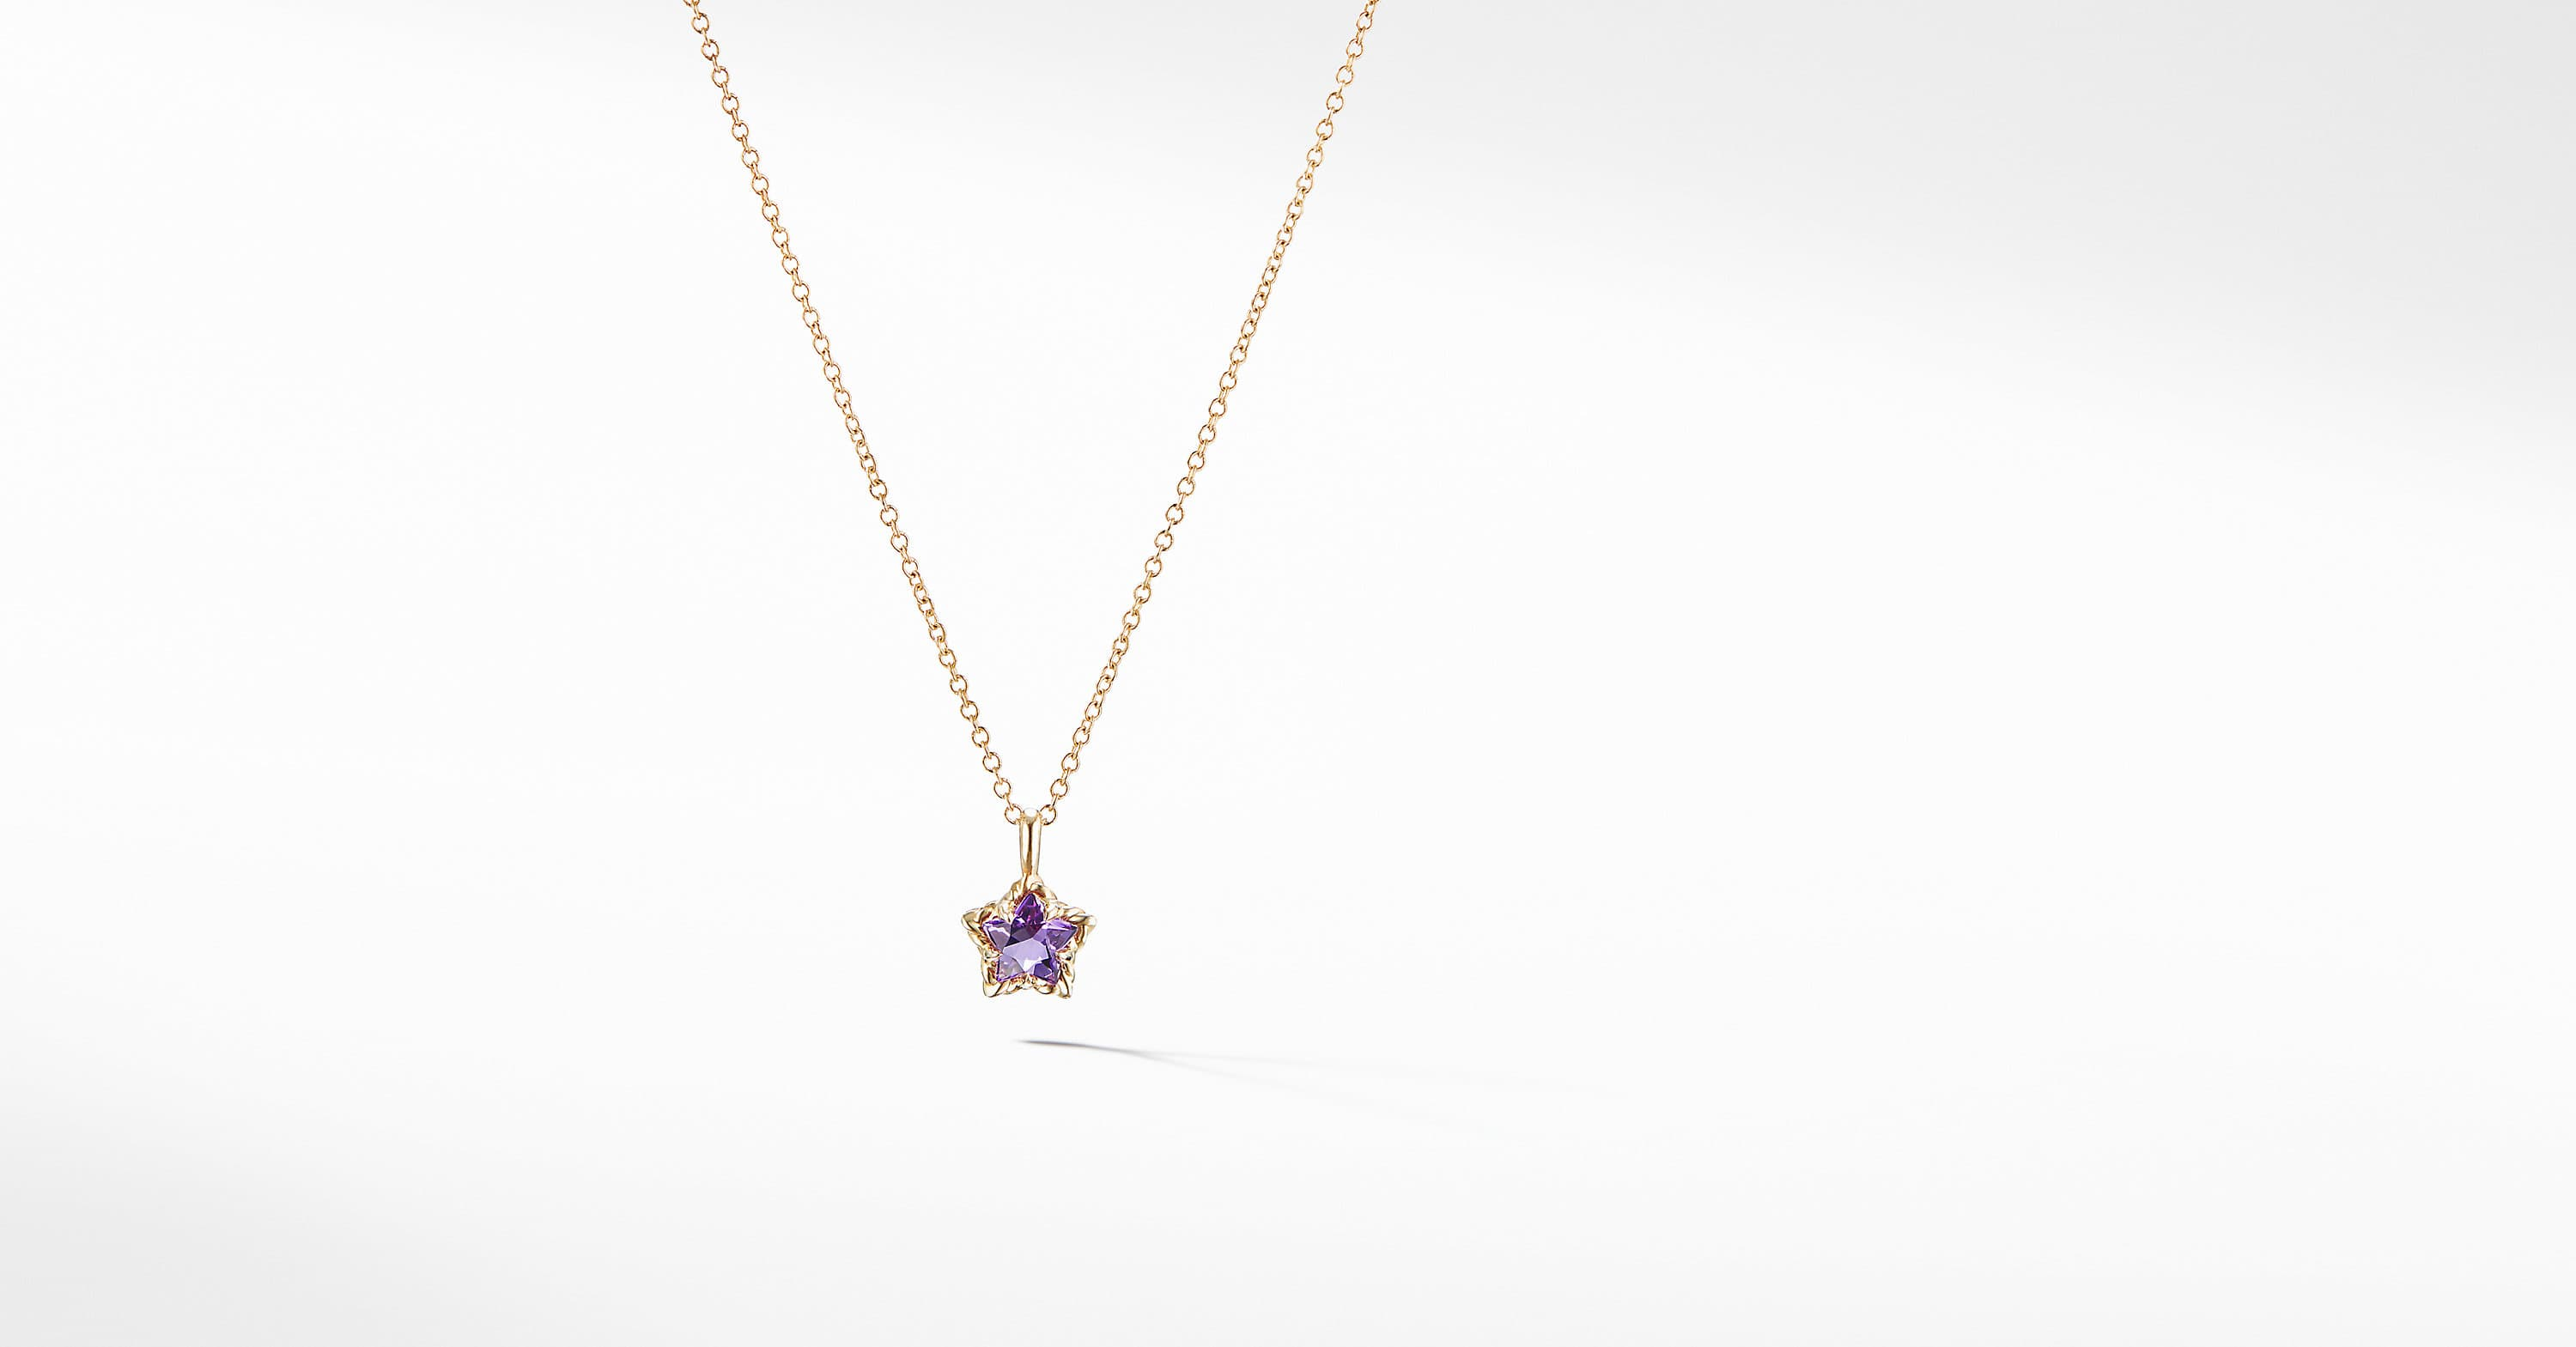 Cable Collectibles Kids Star Charm Necklace in 18K Gold